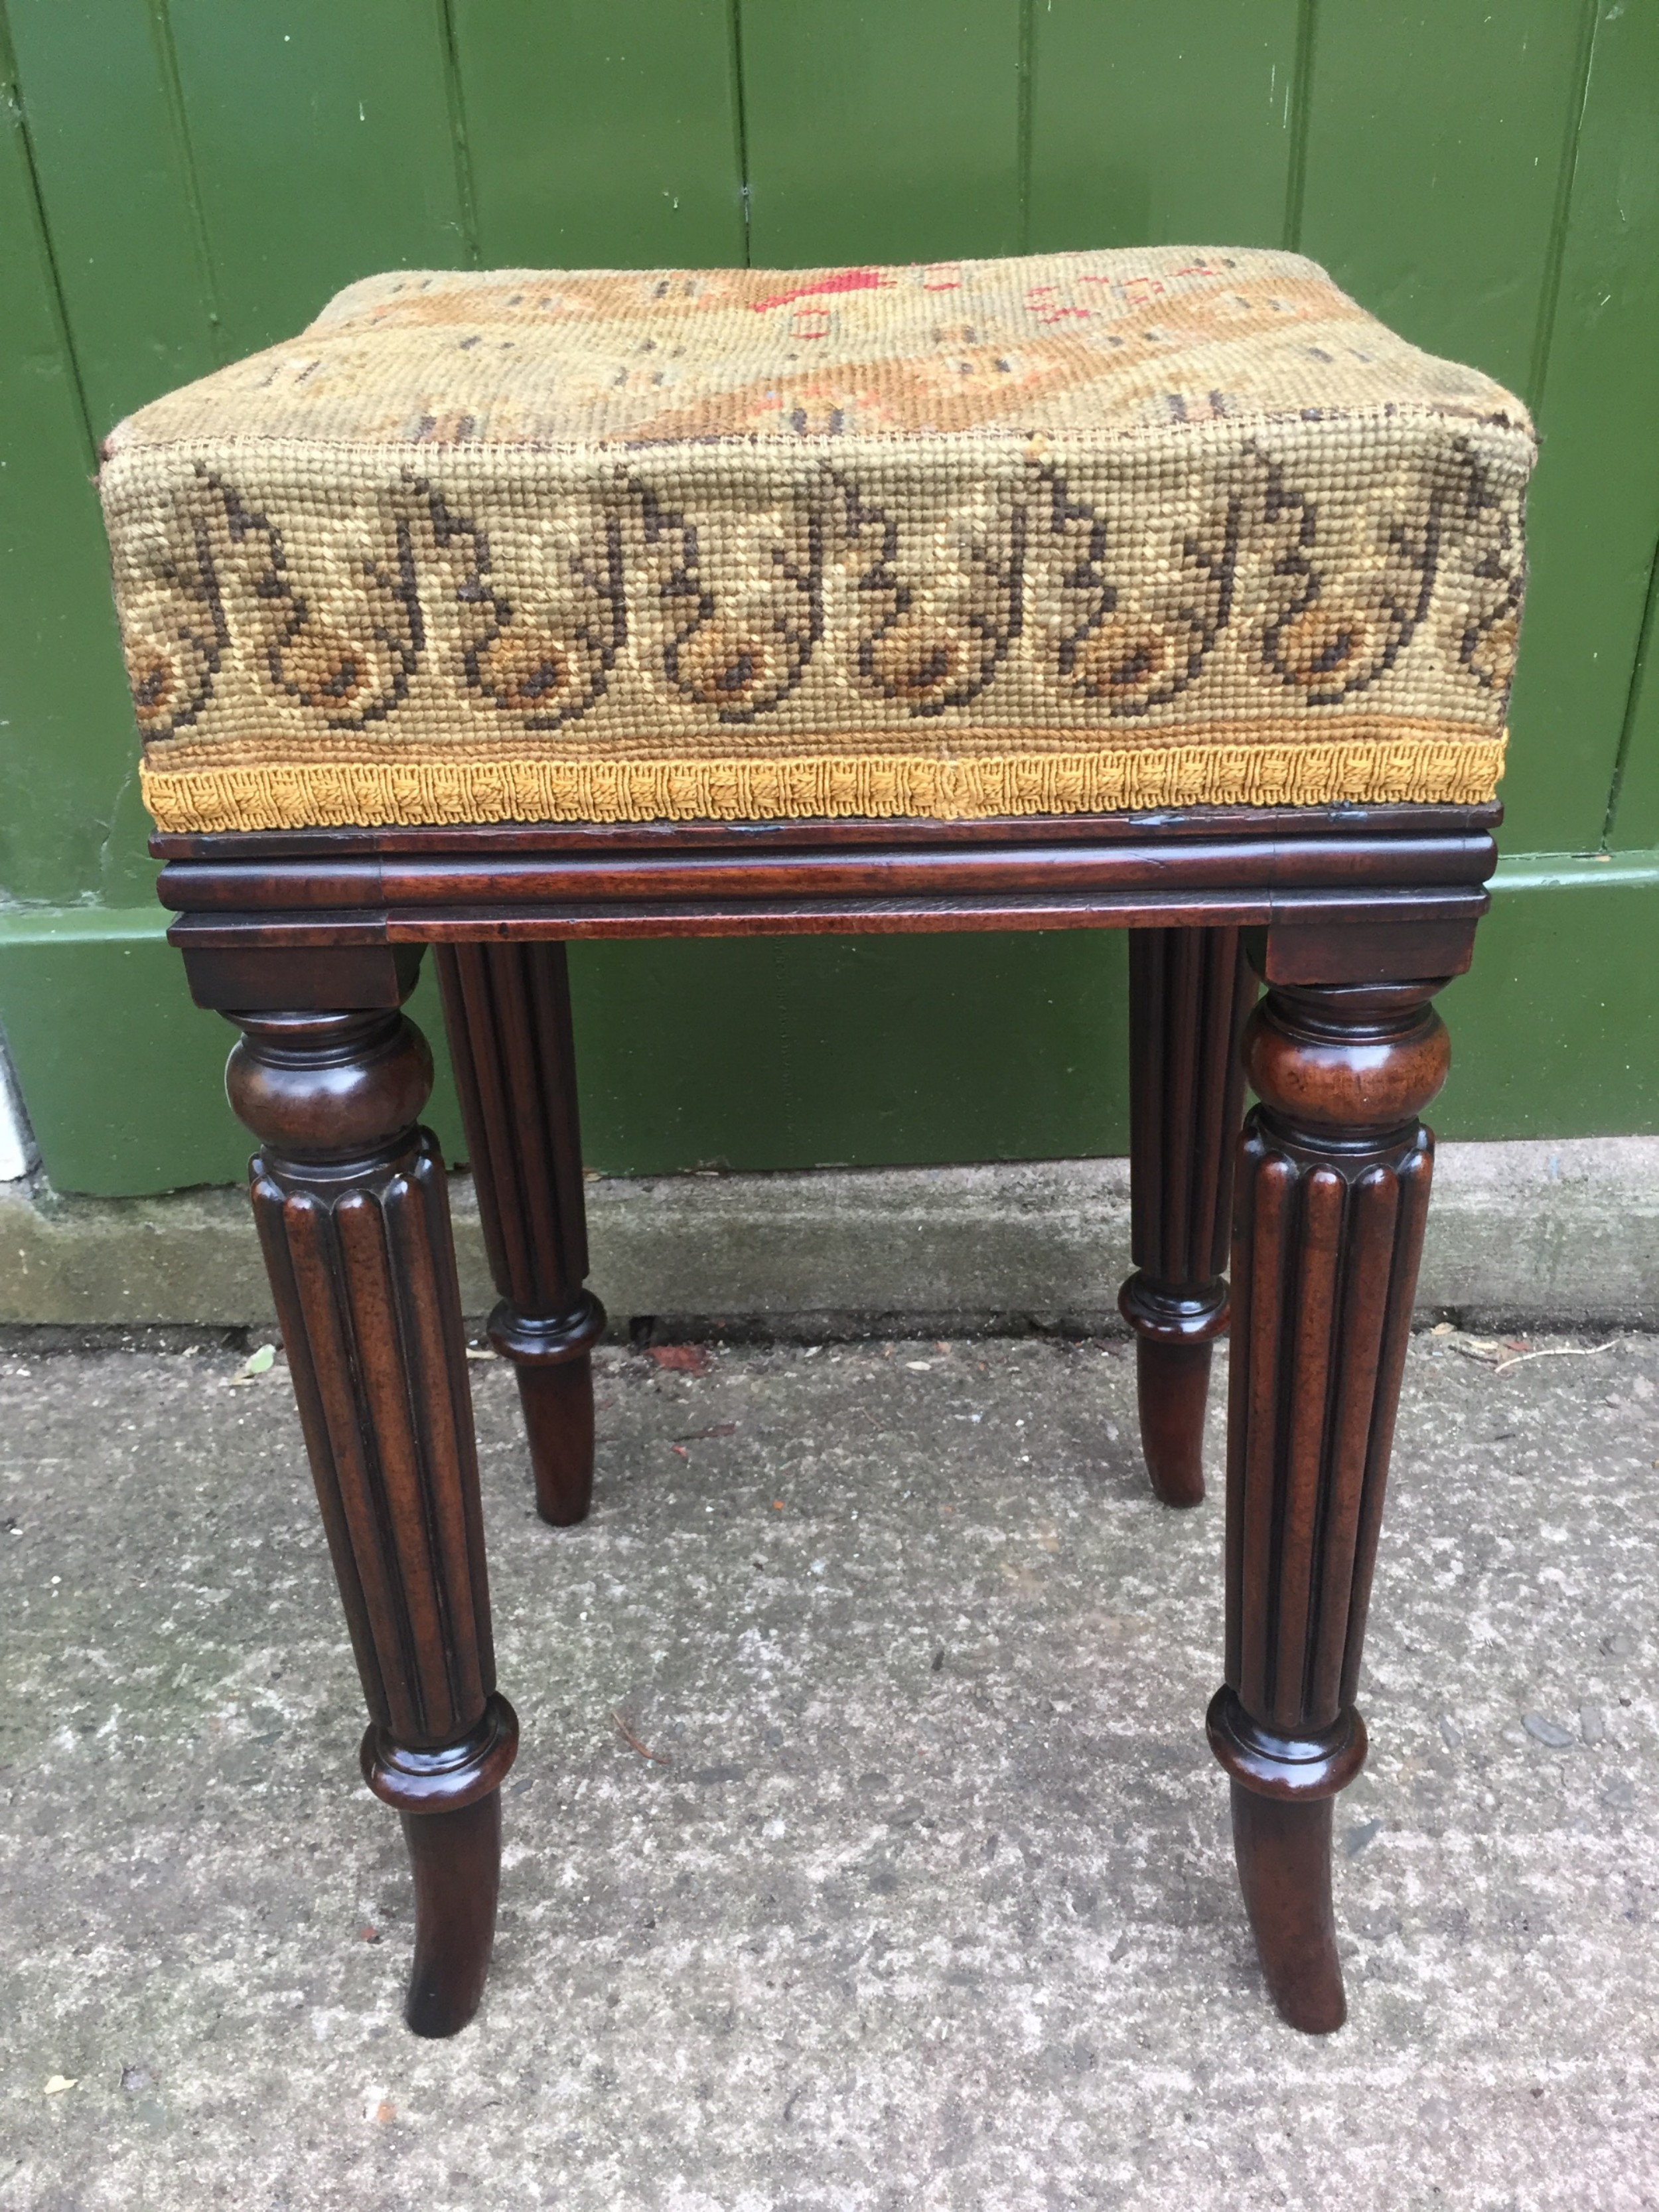 early c19th george iv period mahogany framed dressing stool in the manner of gillows of lancaster